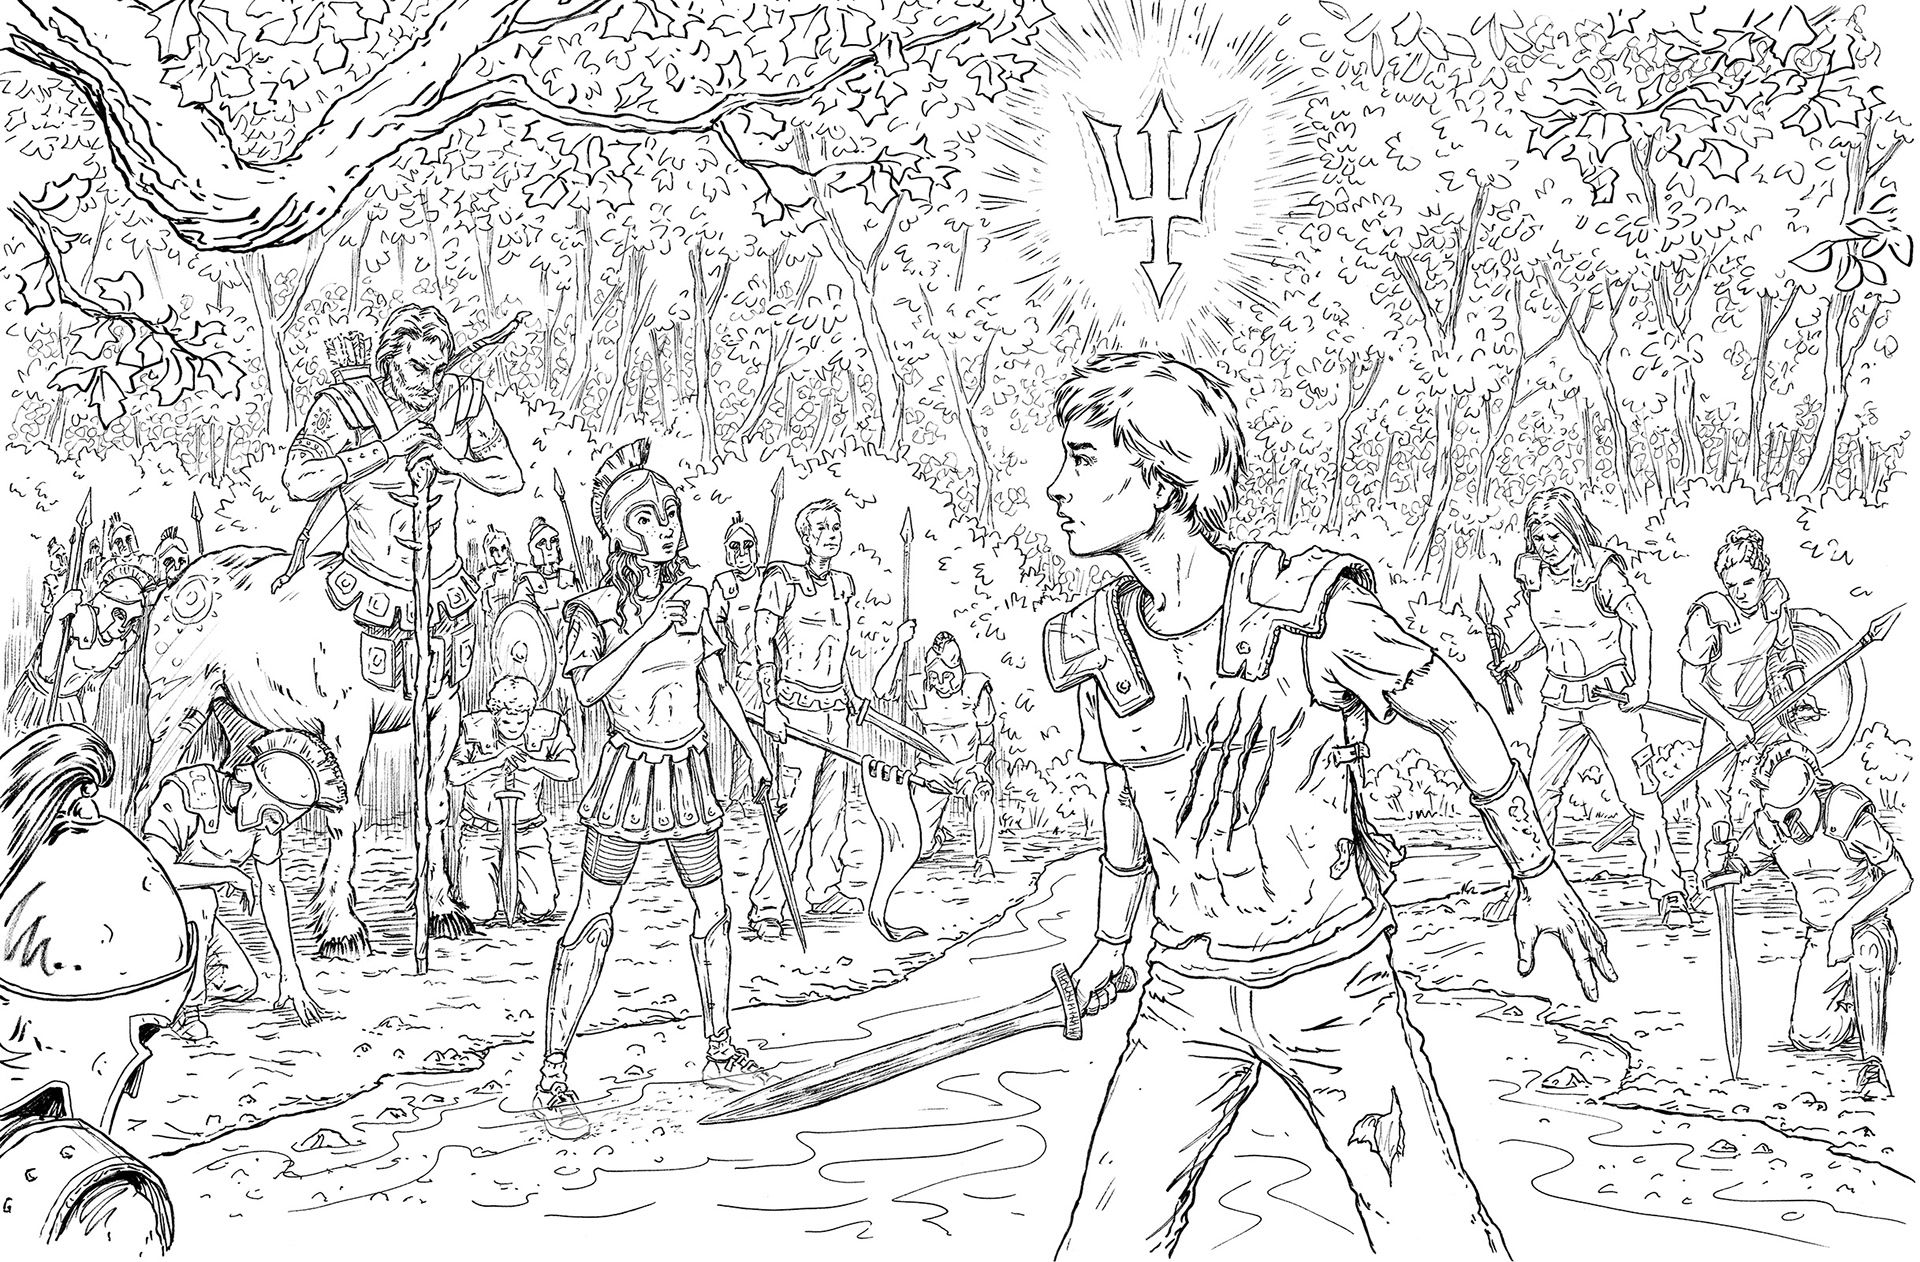 Image Result For Percy Jackson Art Black And White Coloring Books Enchanted Forest Coloring Book Lost Ocean Coloring Book